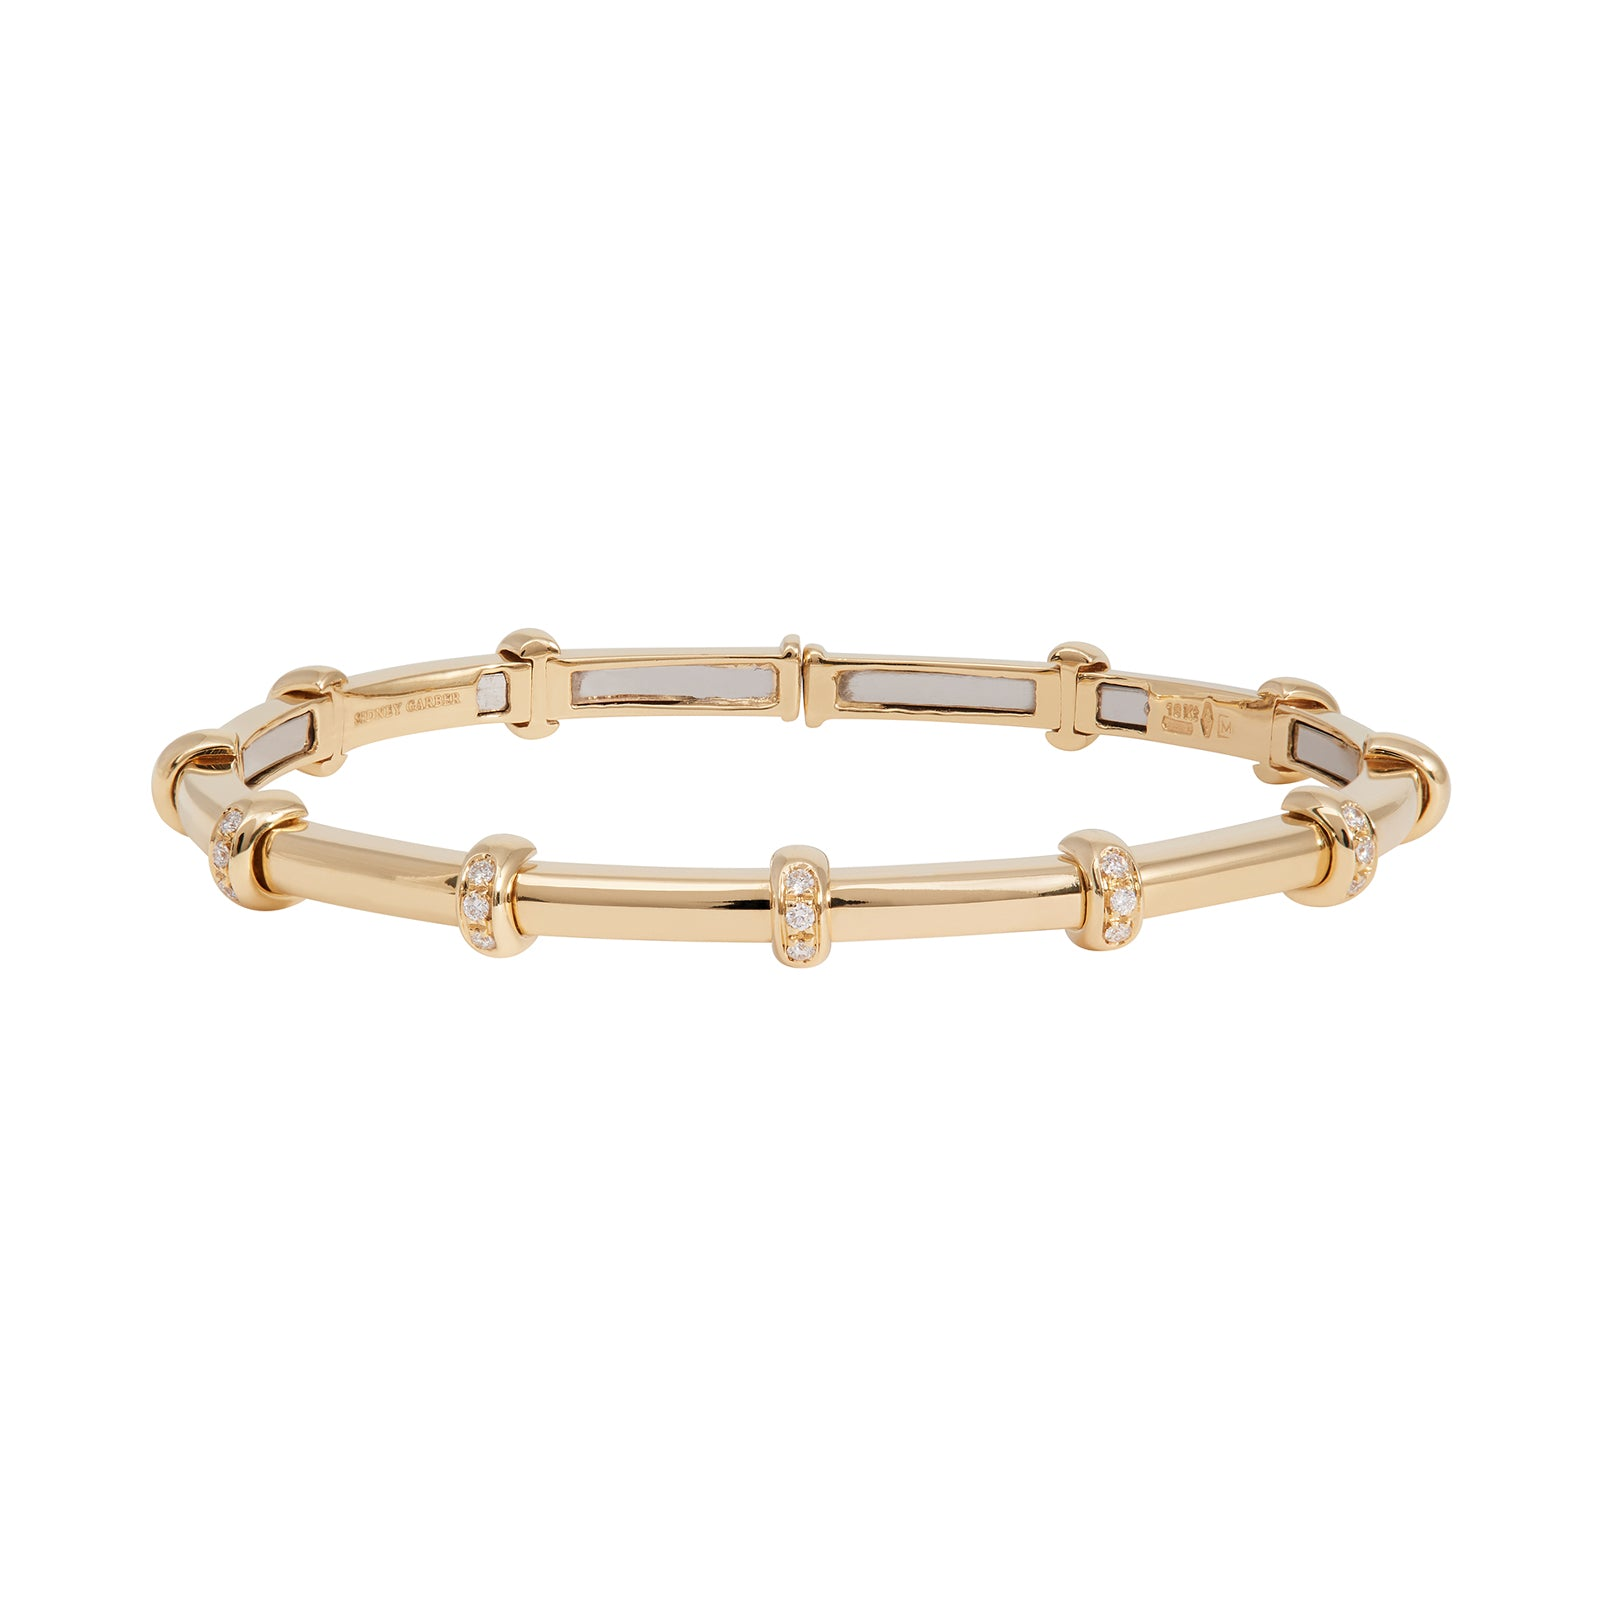 Sidney Garber Carly Bracelet - Yellow Gold - Bracelets - Broken English Jewelry